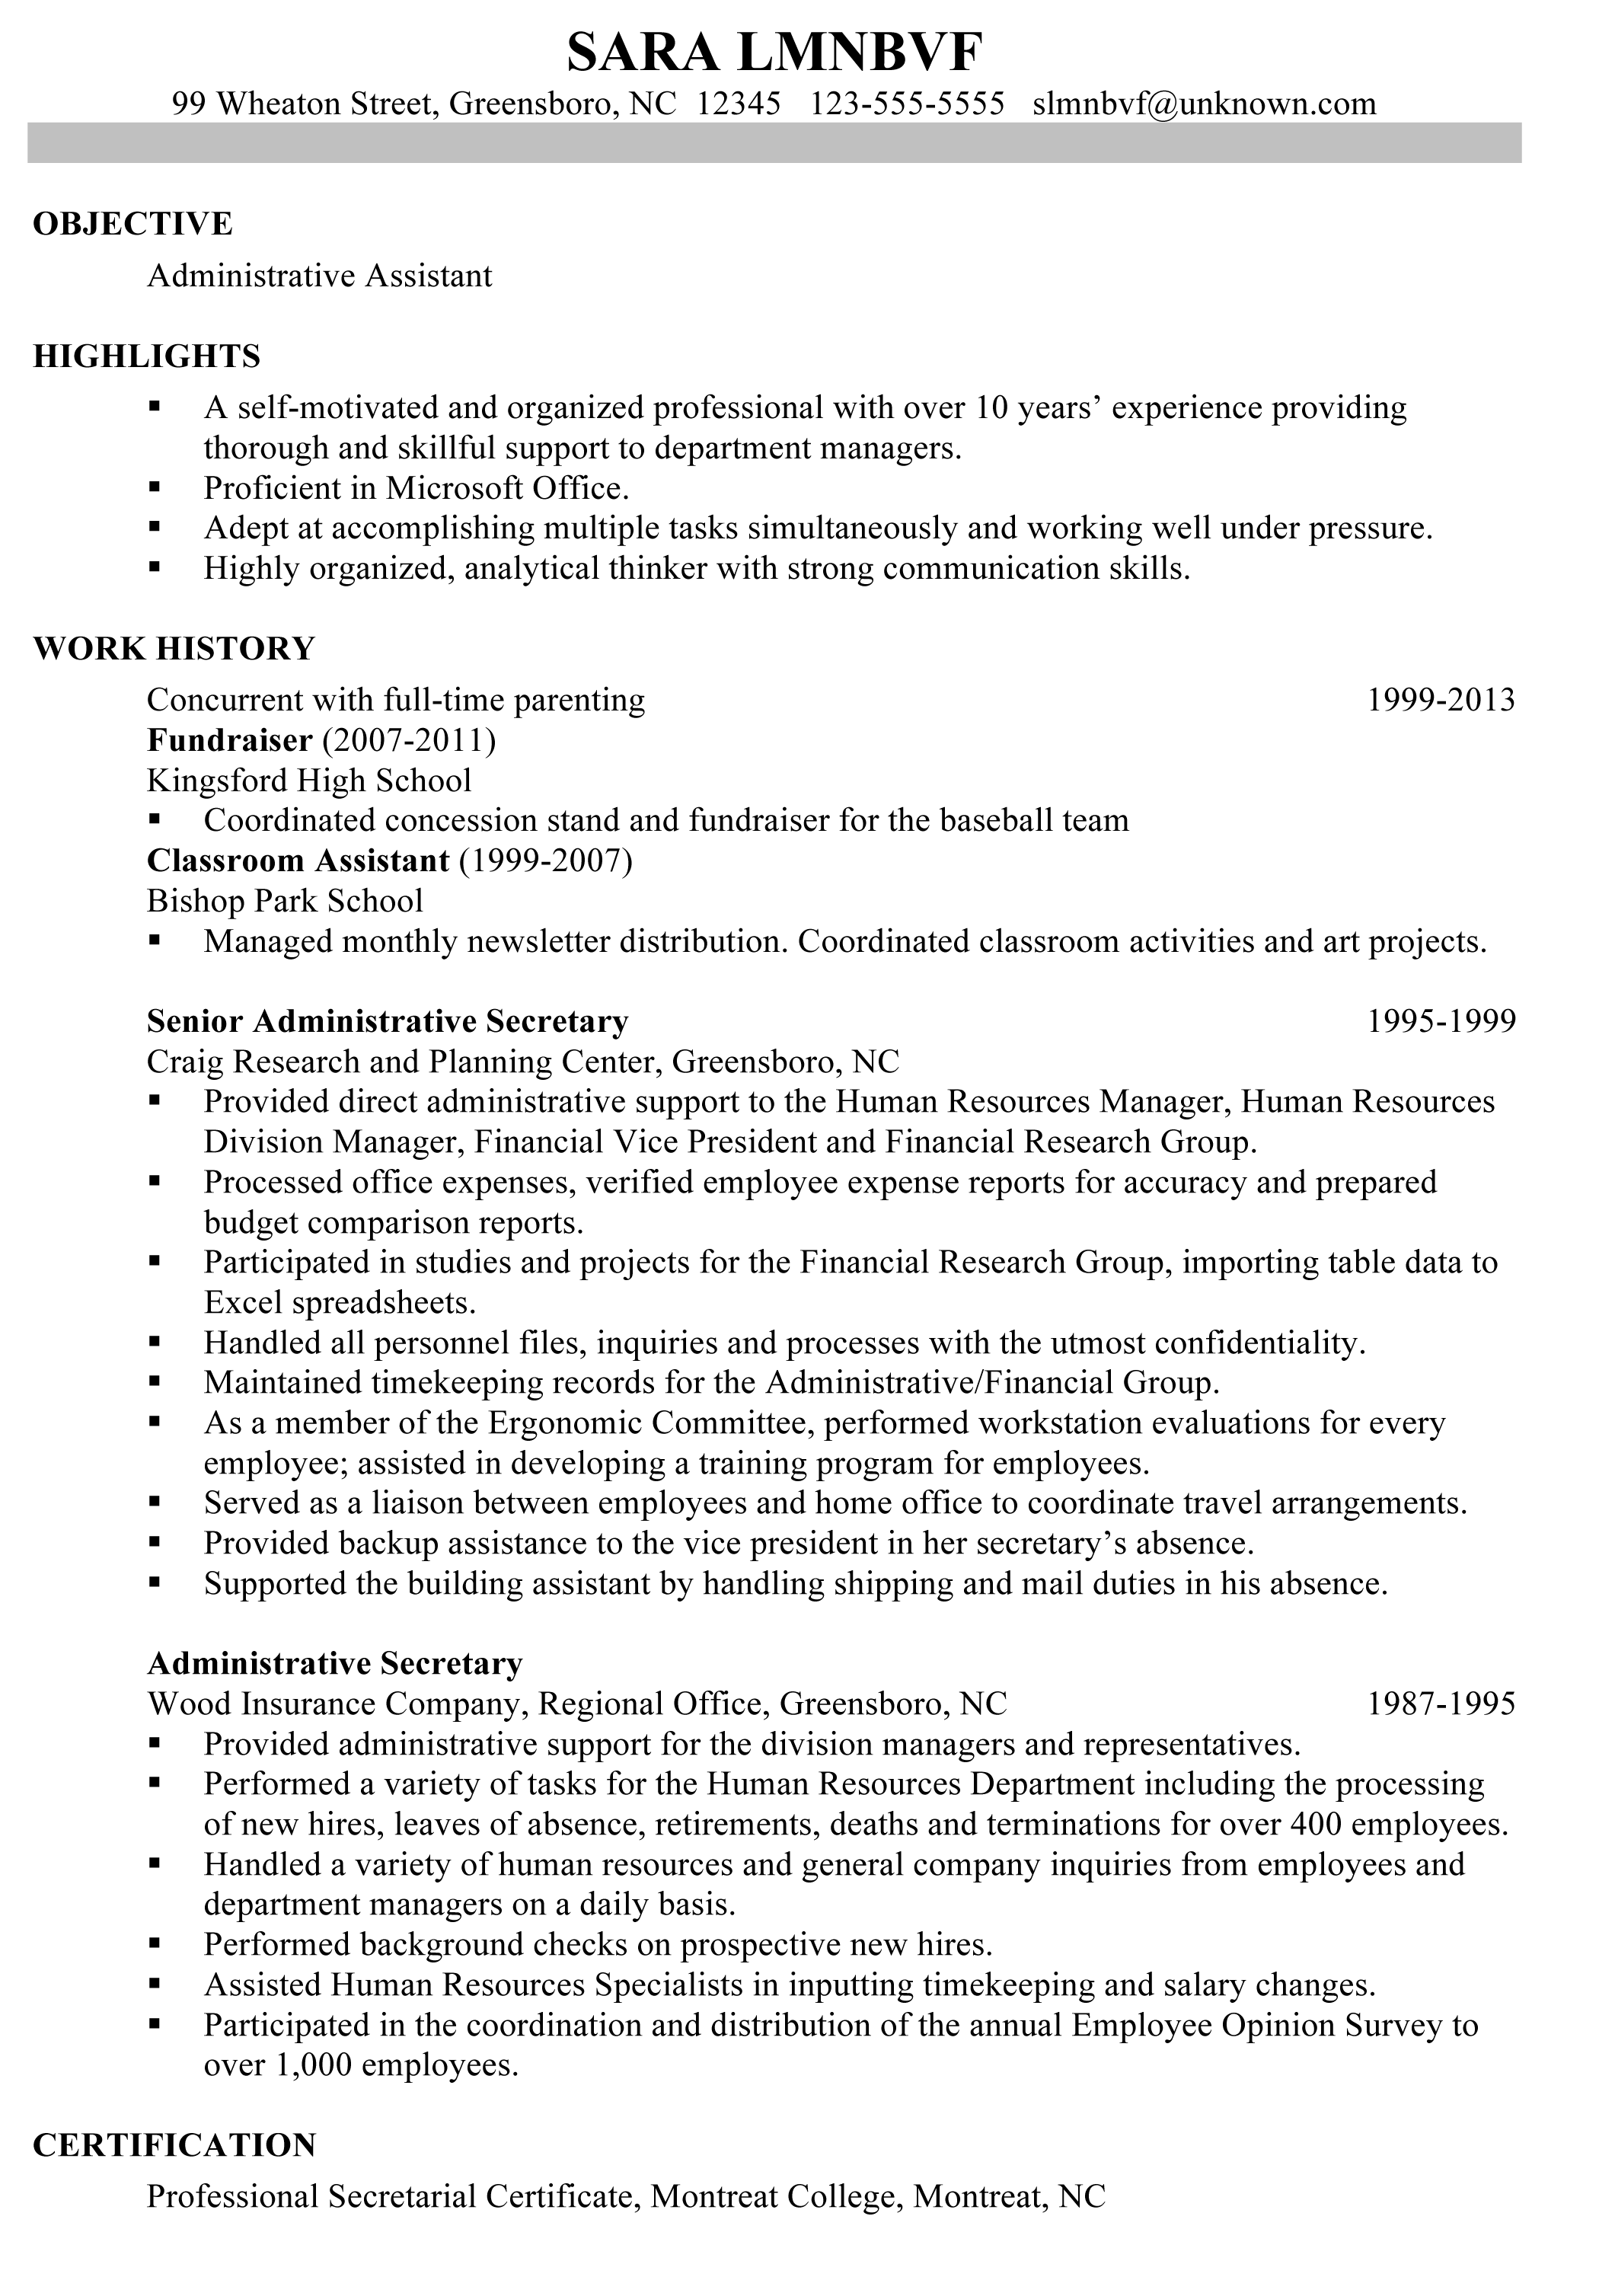 Administrative Assistant Resume Sample Chronological Resume Sample Administrative Assistant  Resume